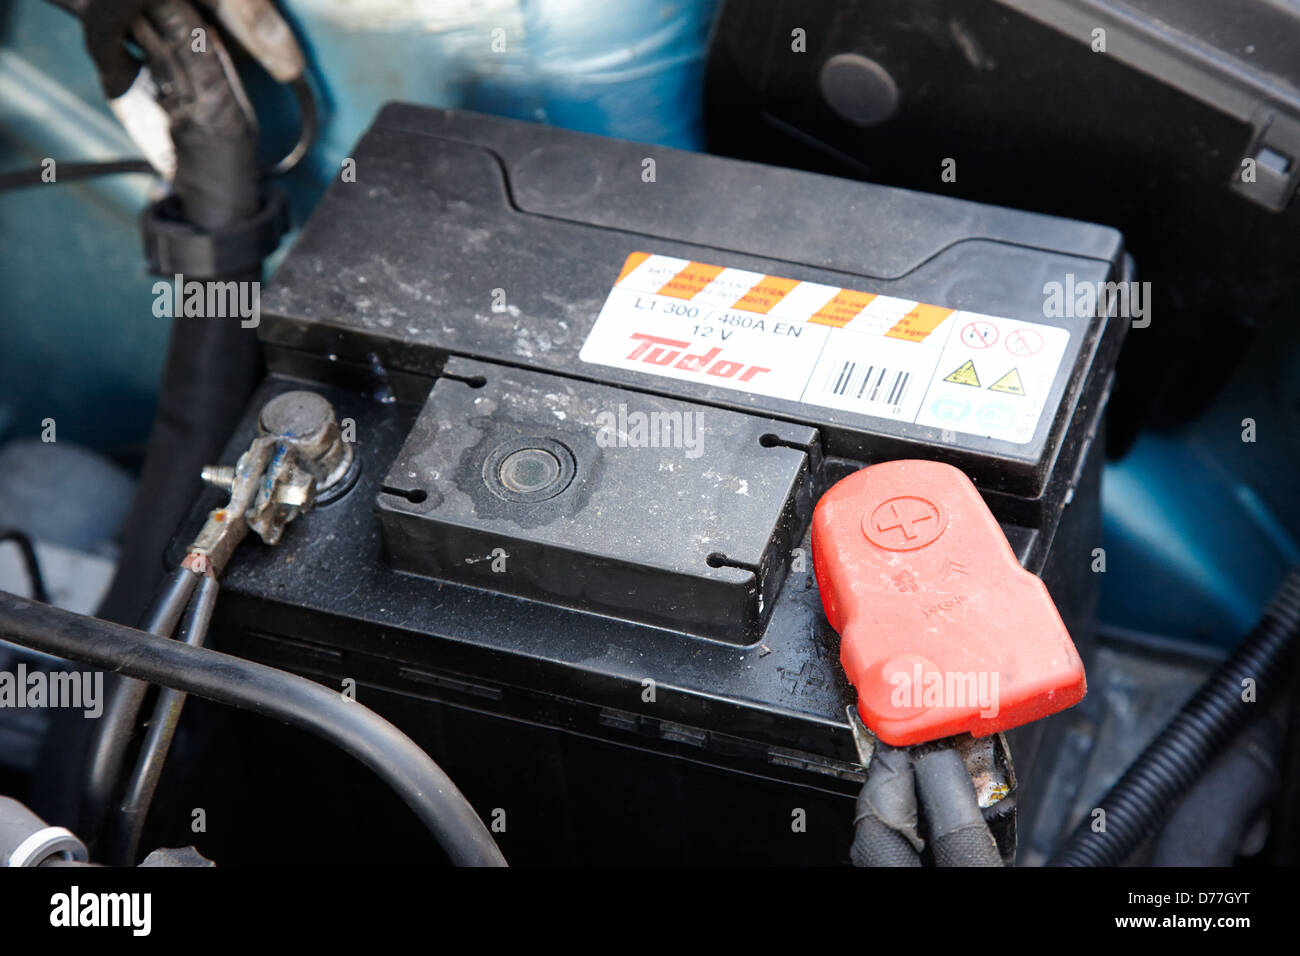 Where is the battery in a car - Stock Photo Car Battery Connected In A Car Engine Compartment